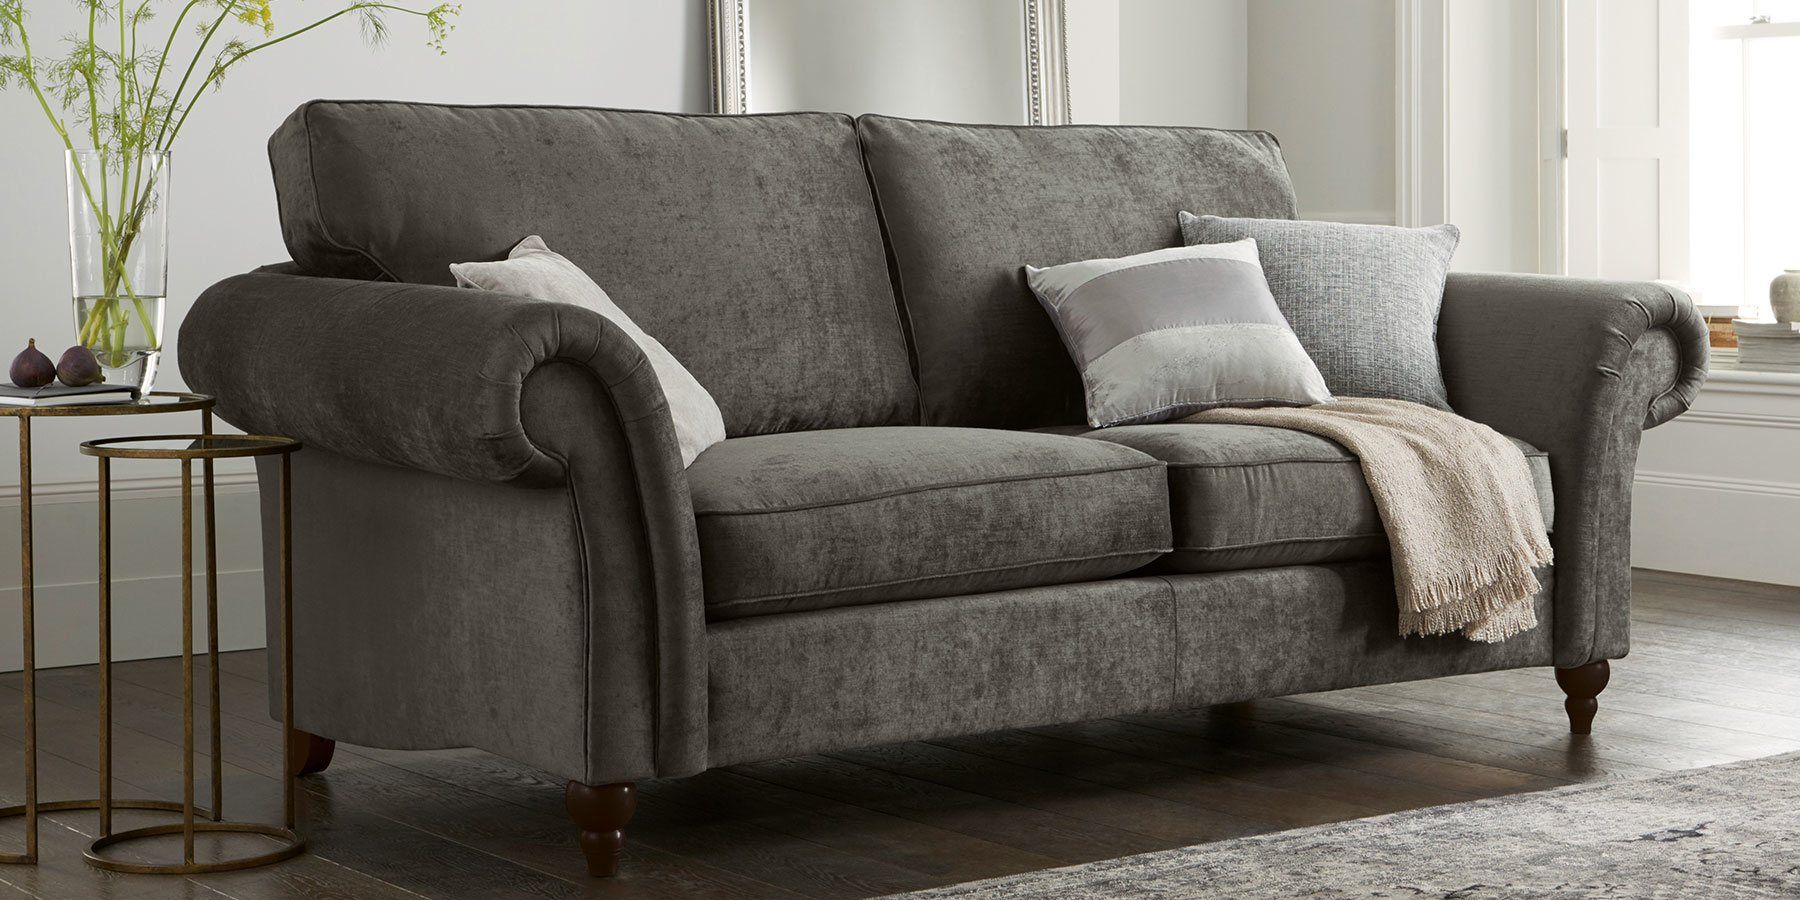 Grey Sofas Uk Next Buy Gosford Medium Sofa 3 Seats Soft Marl Mid French Grey